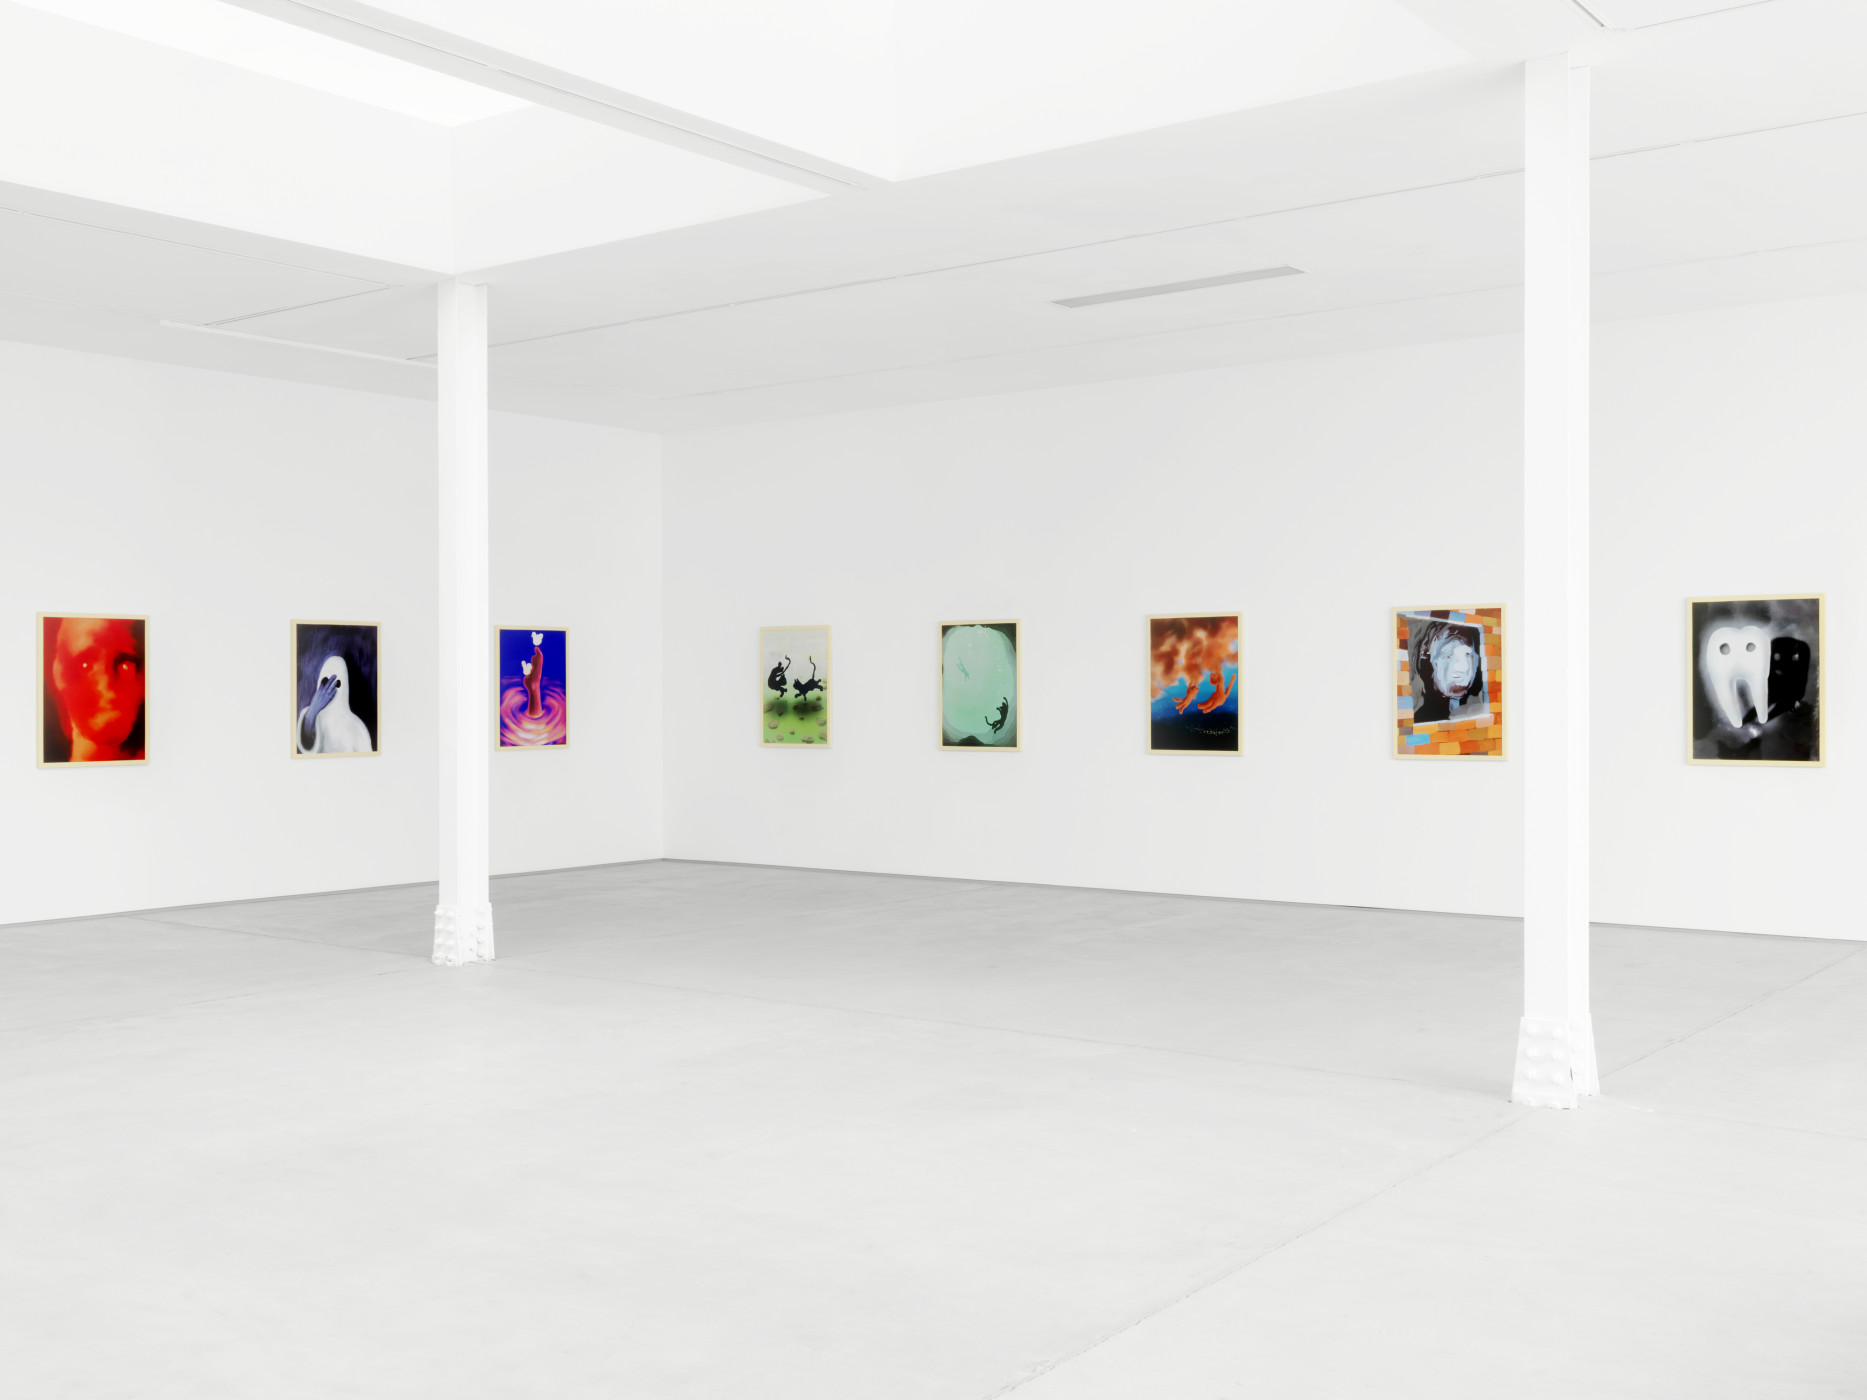 <p>Installation view, 2018<br />Photo by Stefan Altenburger</p>